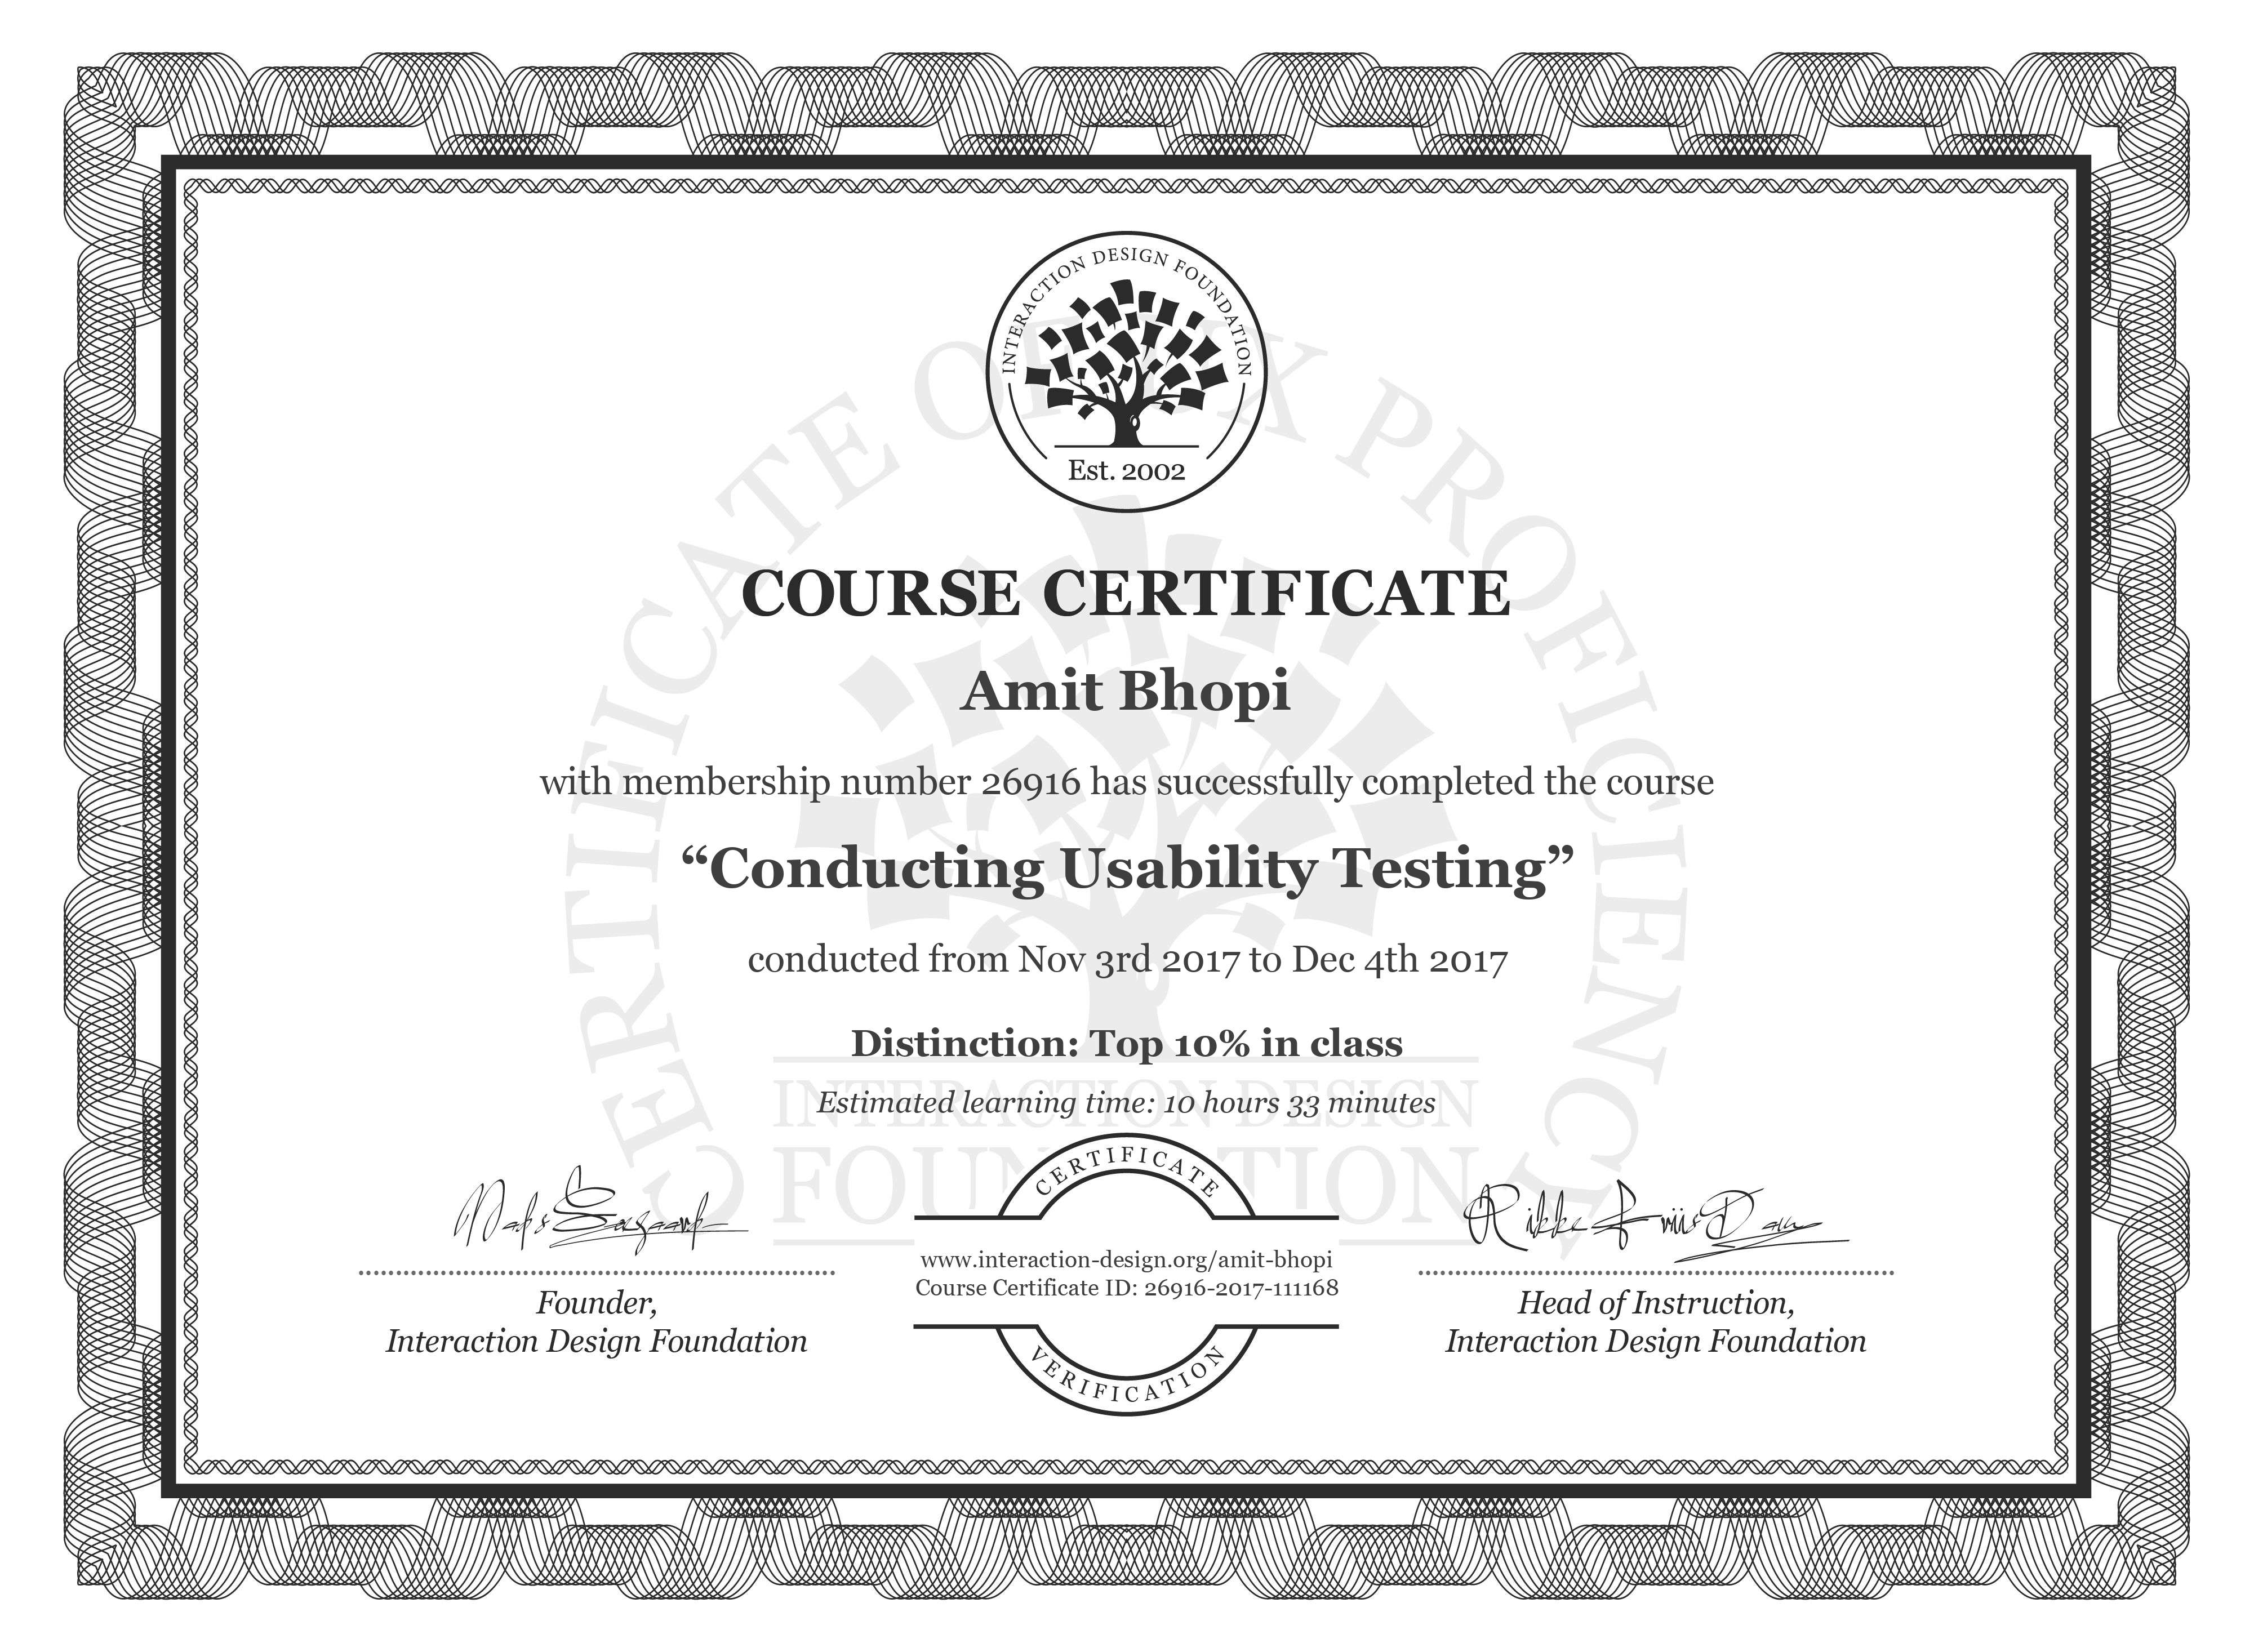 Amit Bhopi: Course Certificate - Conducting Usability Testing